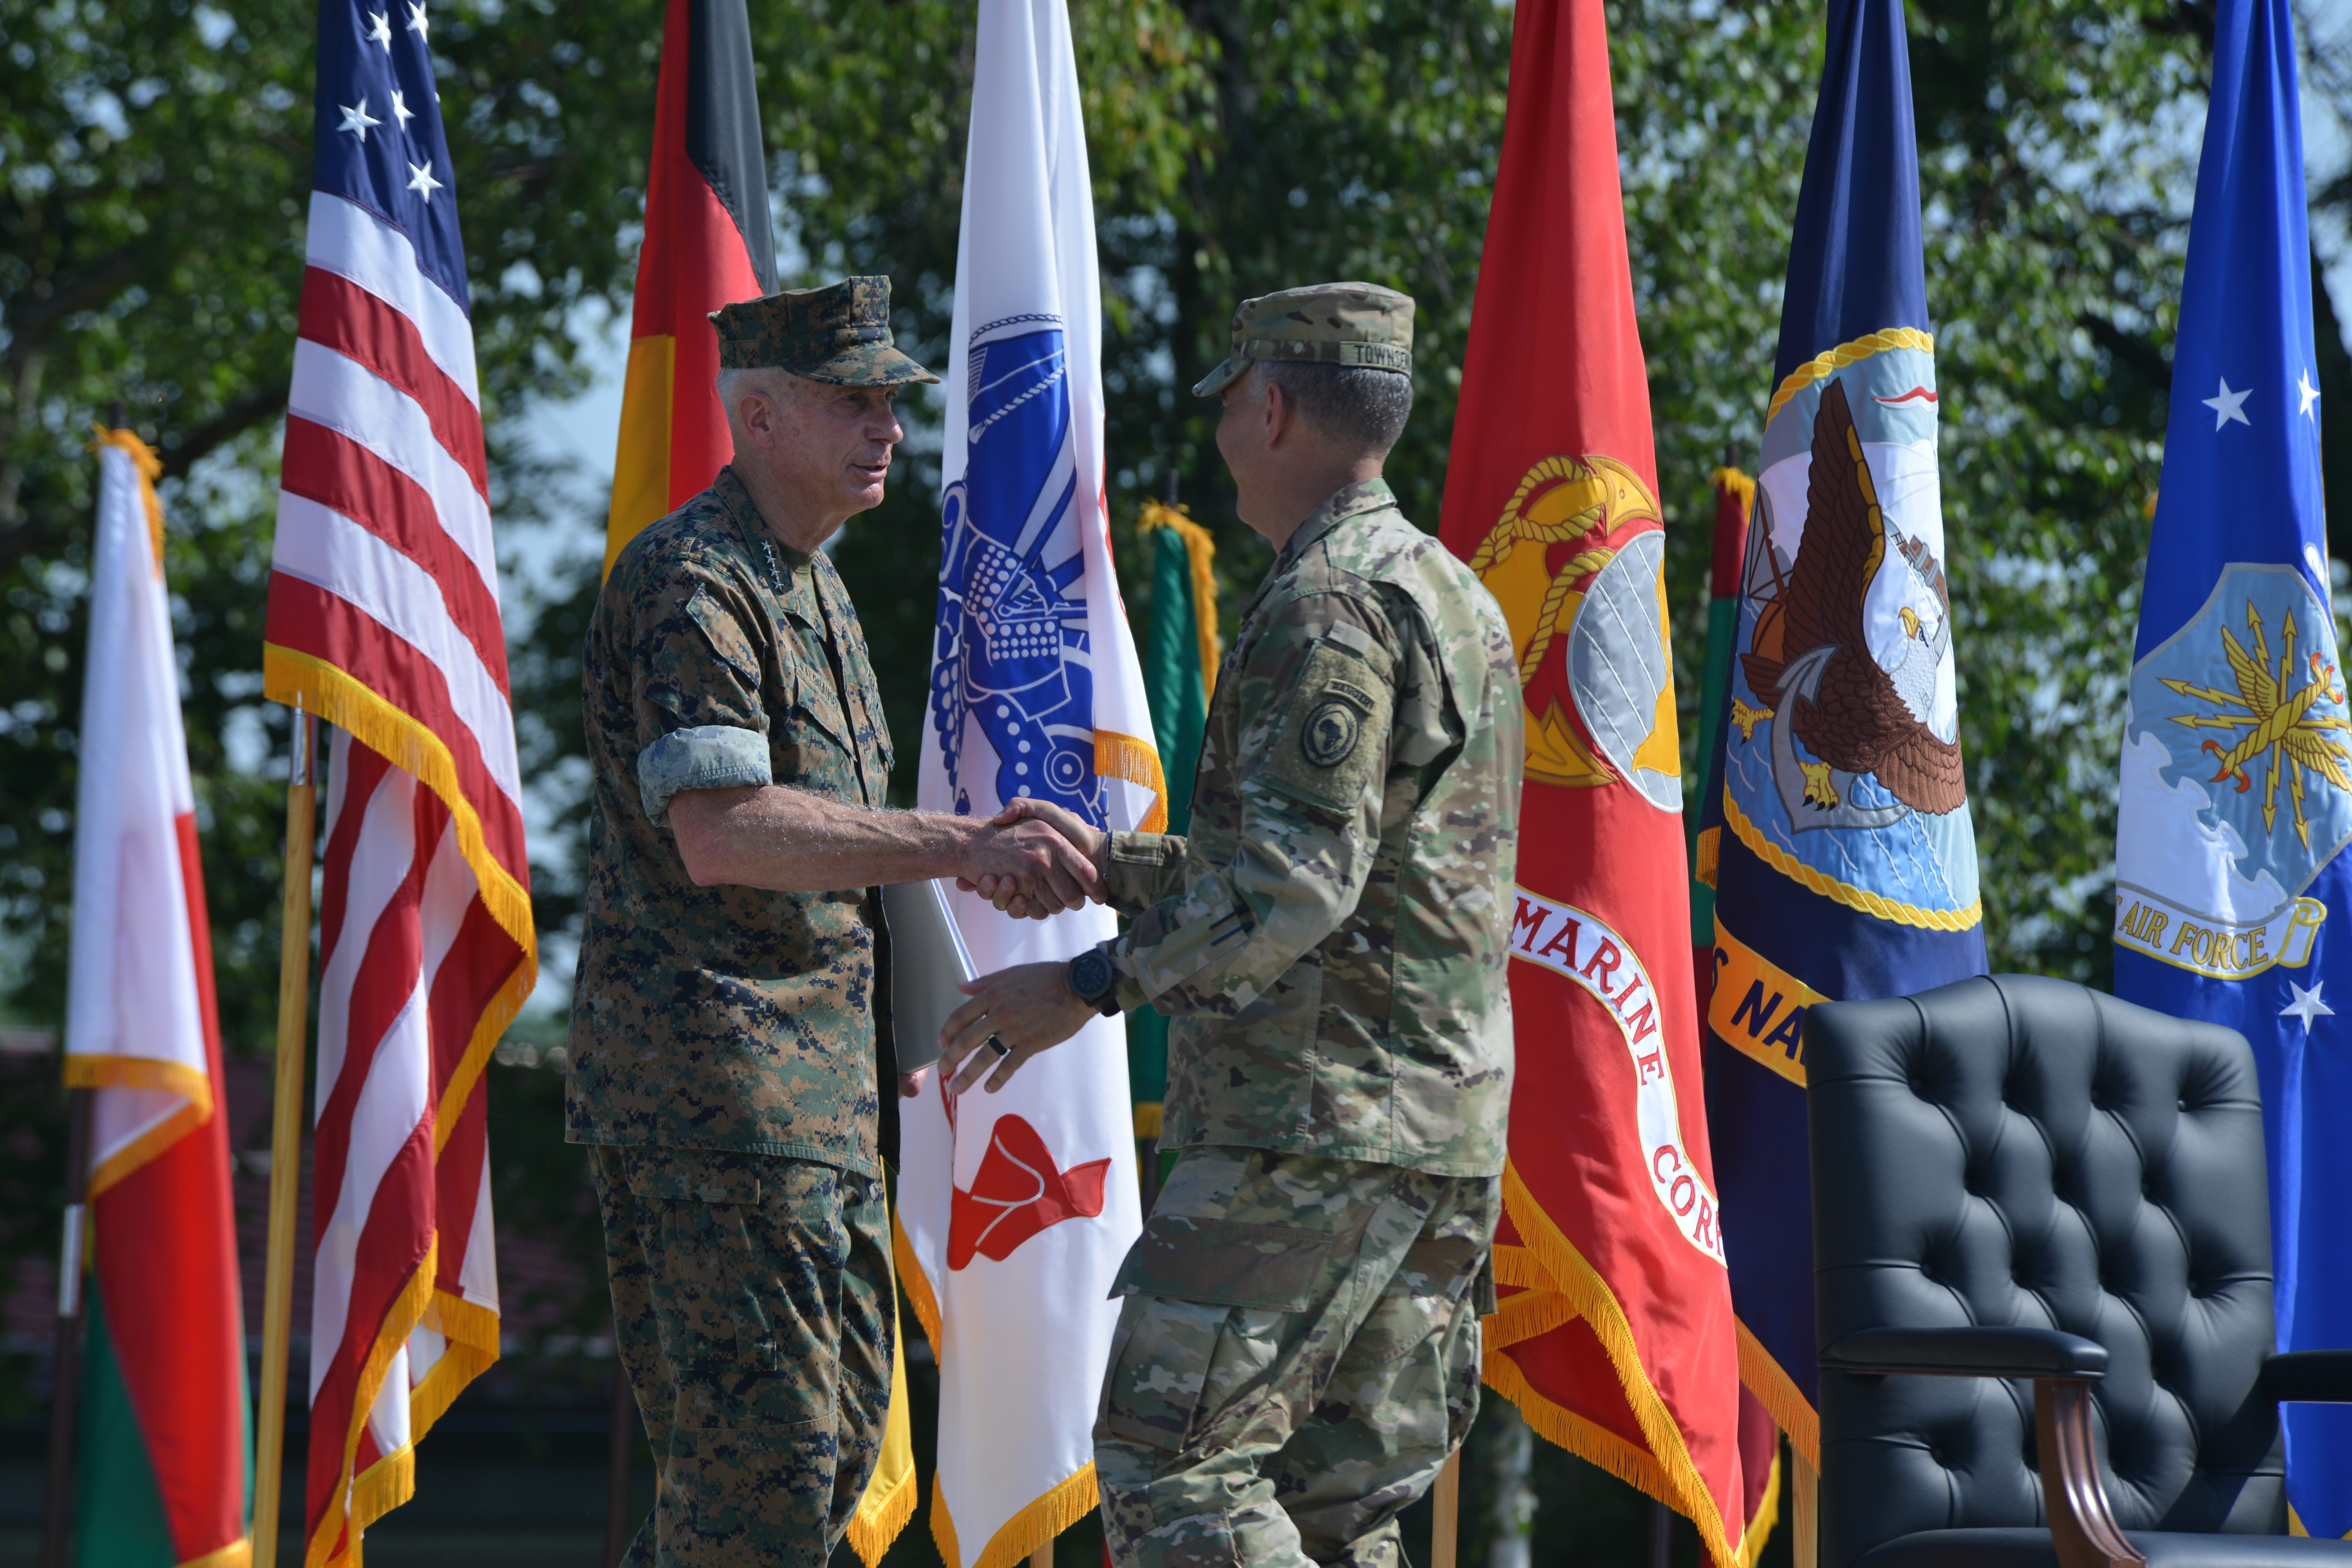 Marine Corps Gen. Thomas D. Waldhauser, outgoing commander, shakes hands with Army Gen. Stephen J. Townsend, incoming commander, during the AFRICOM change of command ceremony at Patch Barracks in Stuttgart, Germany, July 26, 2019. AFRICOM is one of six of the U.S. Defense Department's geographic unified commands and is responsible to the Secretary of Defense for military relations with African nations, the African Union, and African regional security organizations. (U.S. Army photo by Staff Sgt. Grady Jones/Released)